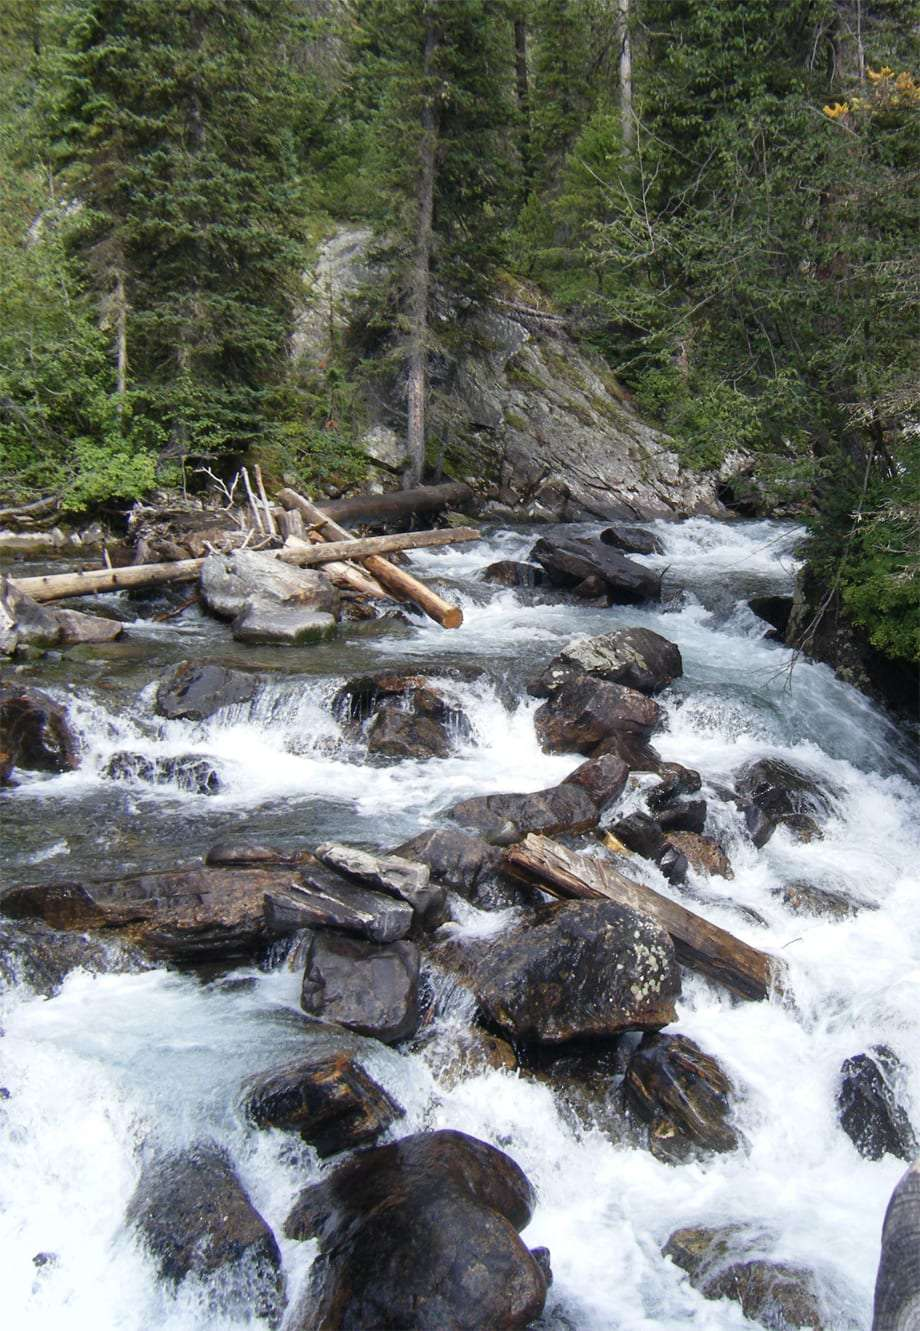 white water breaks, falls and surrounds rocks in a river surrounded by trees and downed logs in Grand Teton National Park